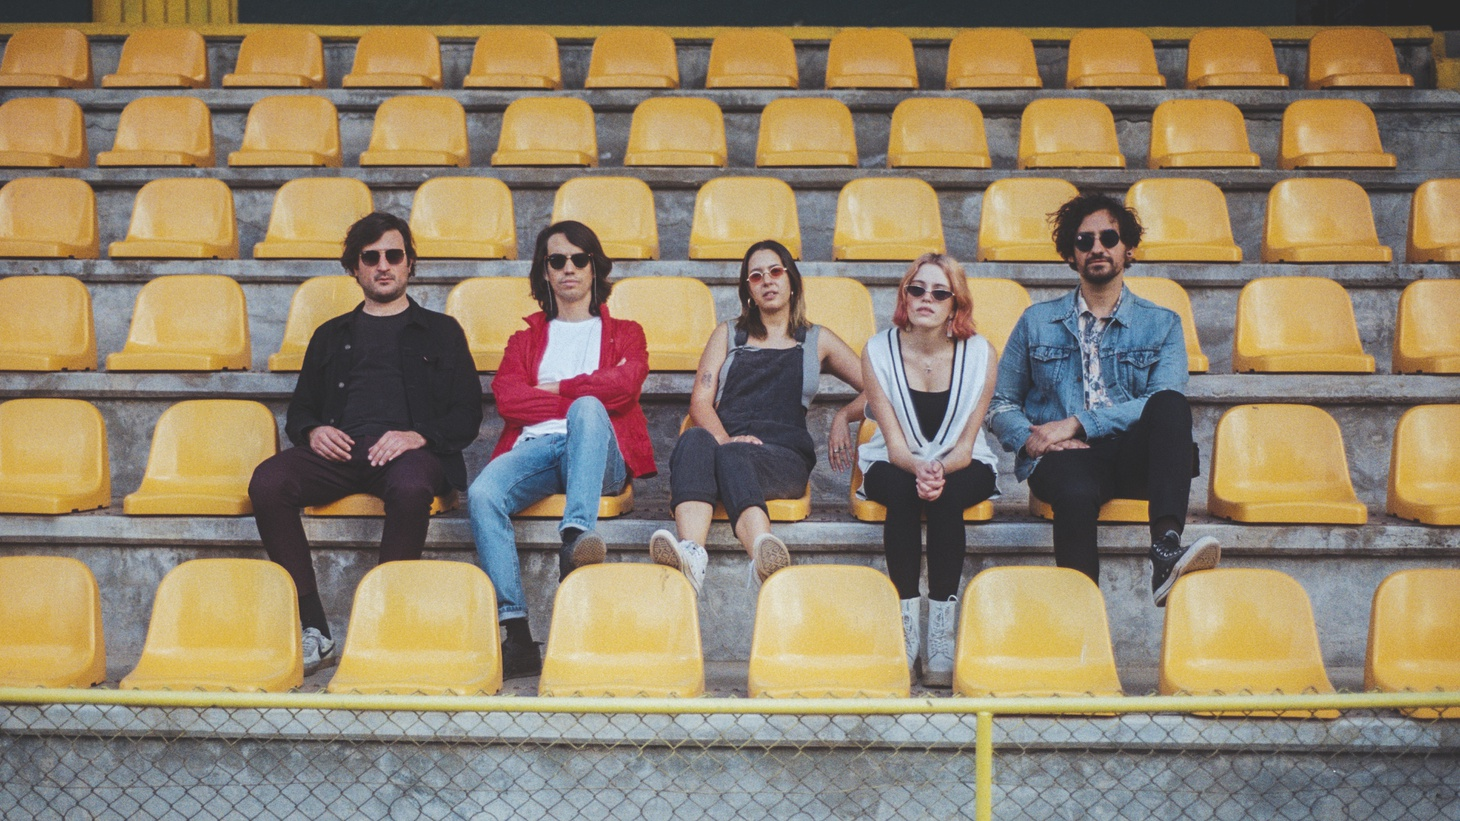 """They may have a French name, but psych-pop outfit Petite Amie are Mexico City-based and release their self-titled debut album at the end of the week. But why wait? Get familiar with them through an acoustic and serene track titled """"Adios."""""""